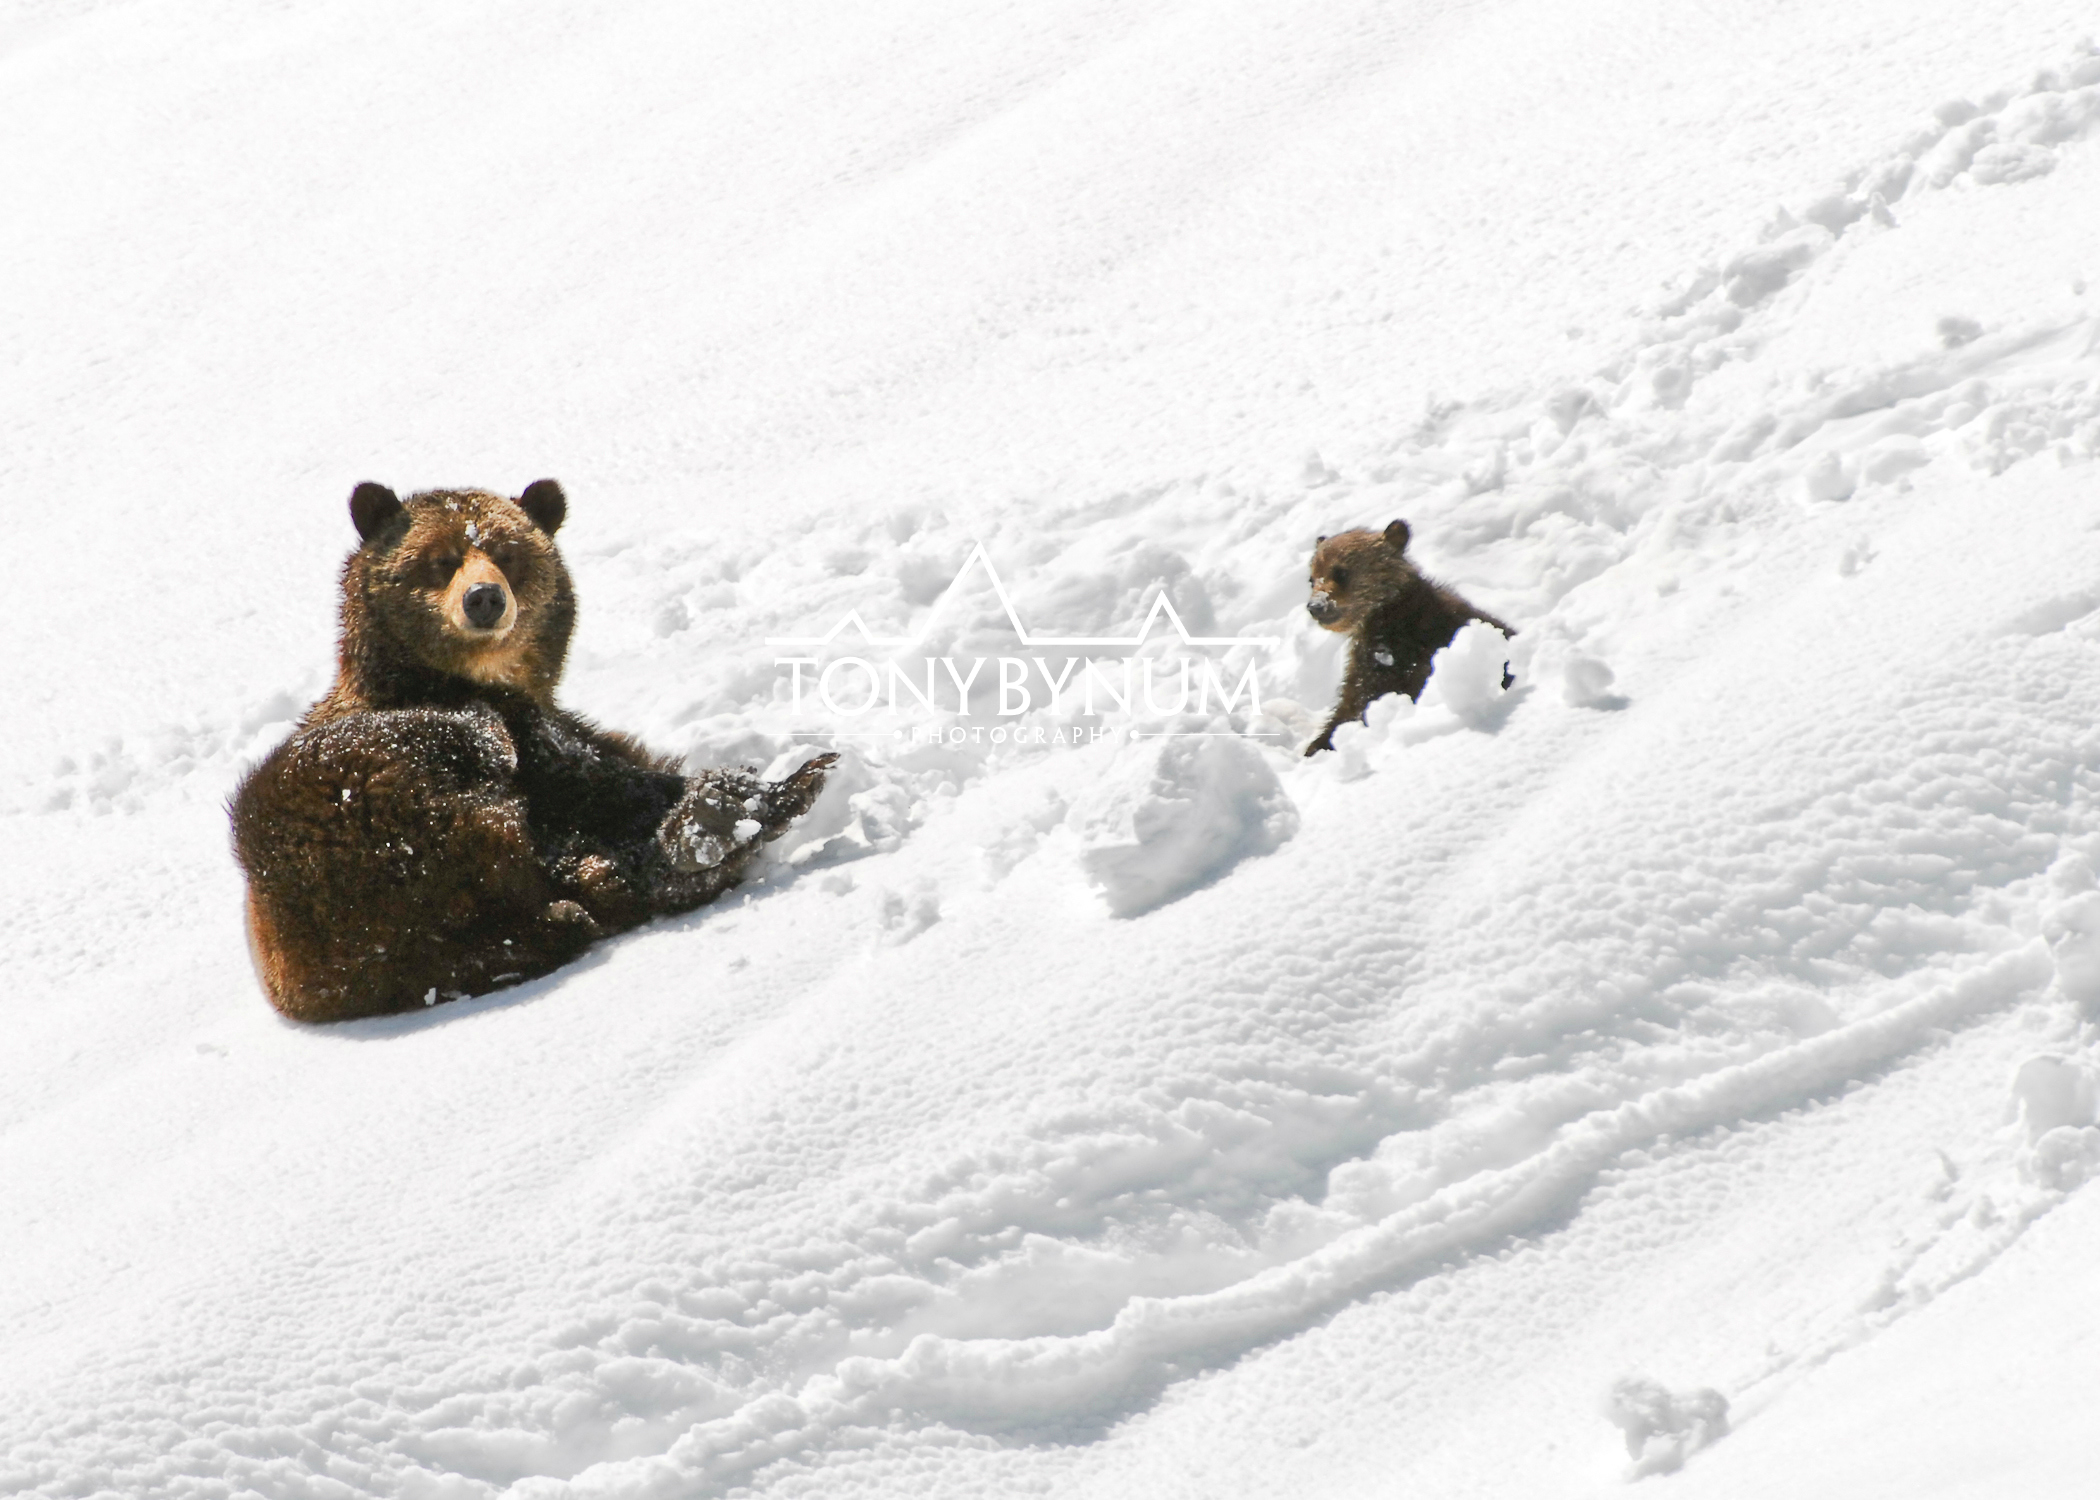 grizzly-bear-sow-cub-snow-glacier-national-park1-.jpg